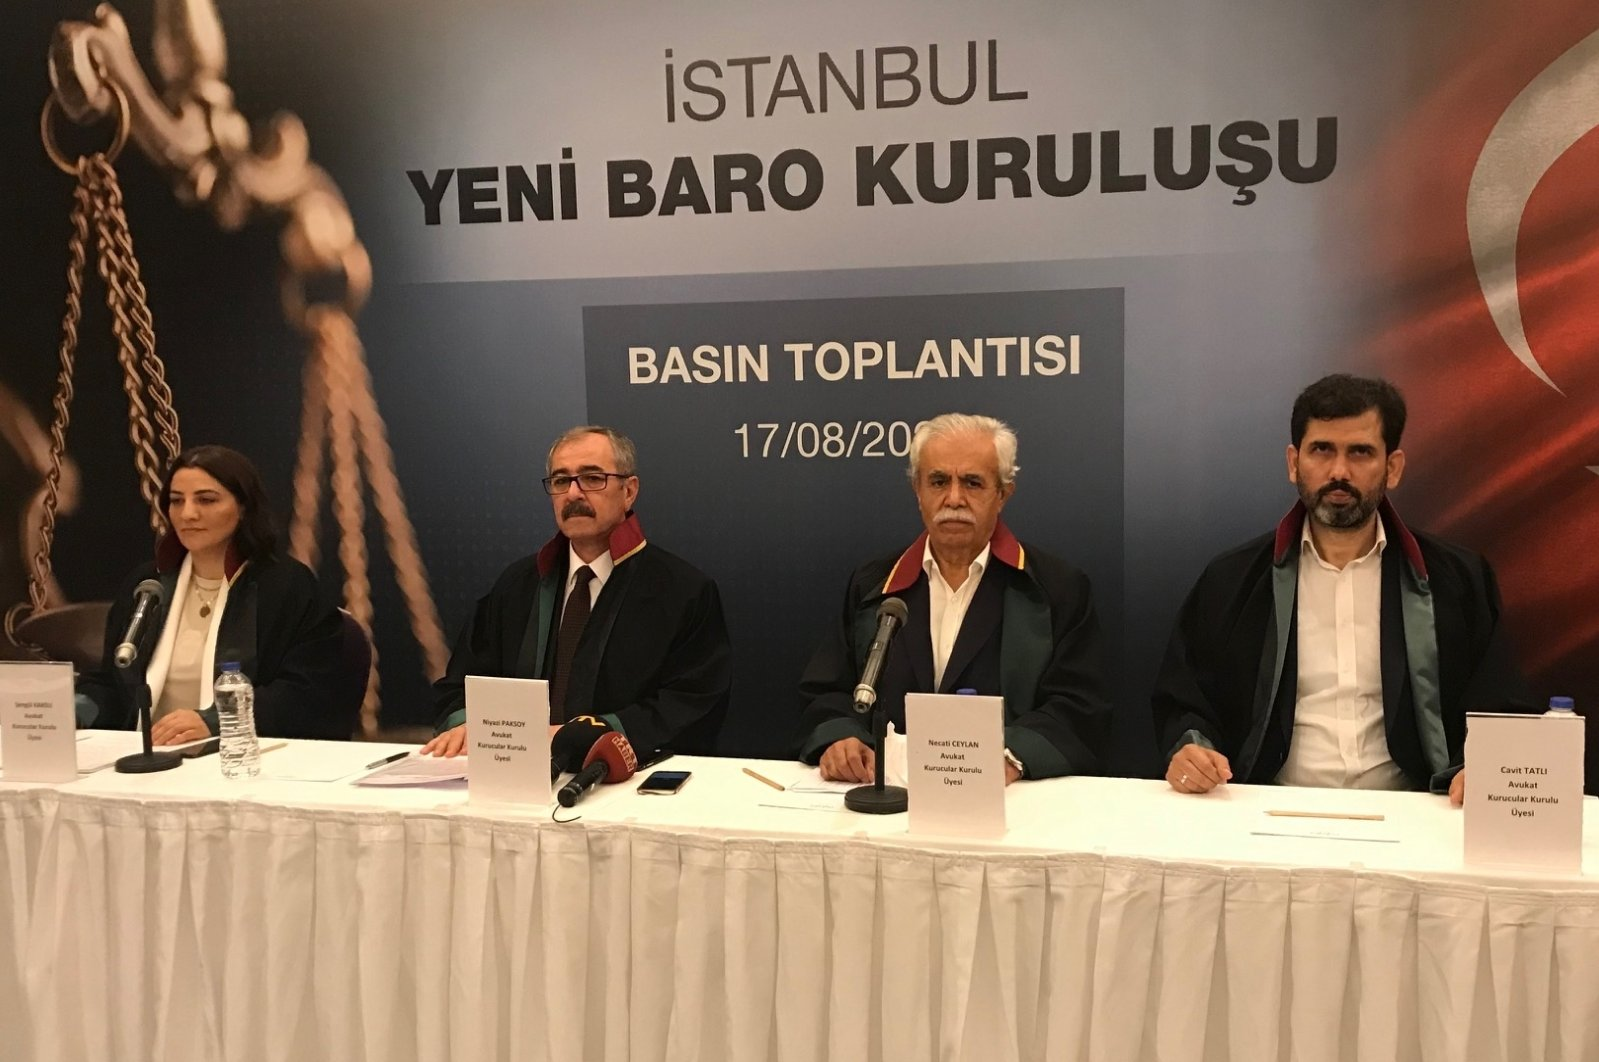 Founding members of the Second Bar Association, lawyer Şengül Karslı, lawyer Niyazi Paksoy, Necati Ceylan and Cavit Tatlı make press statement about the new bar in Istanbul on Monday, Aug. 17, 2020 (AA Photo)